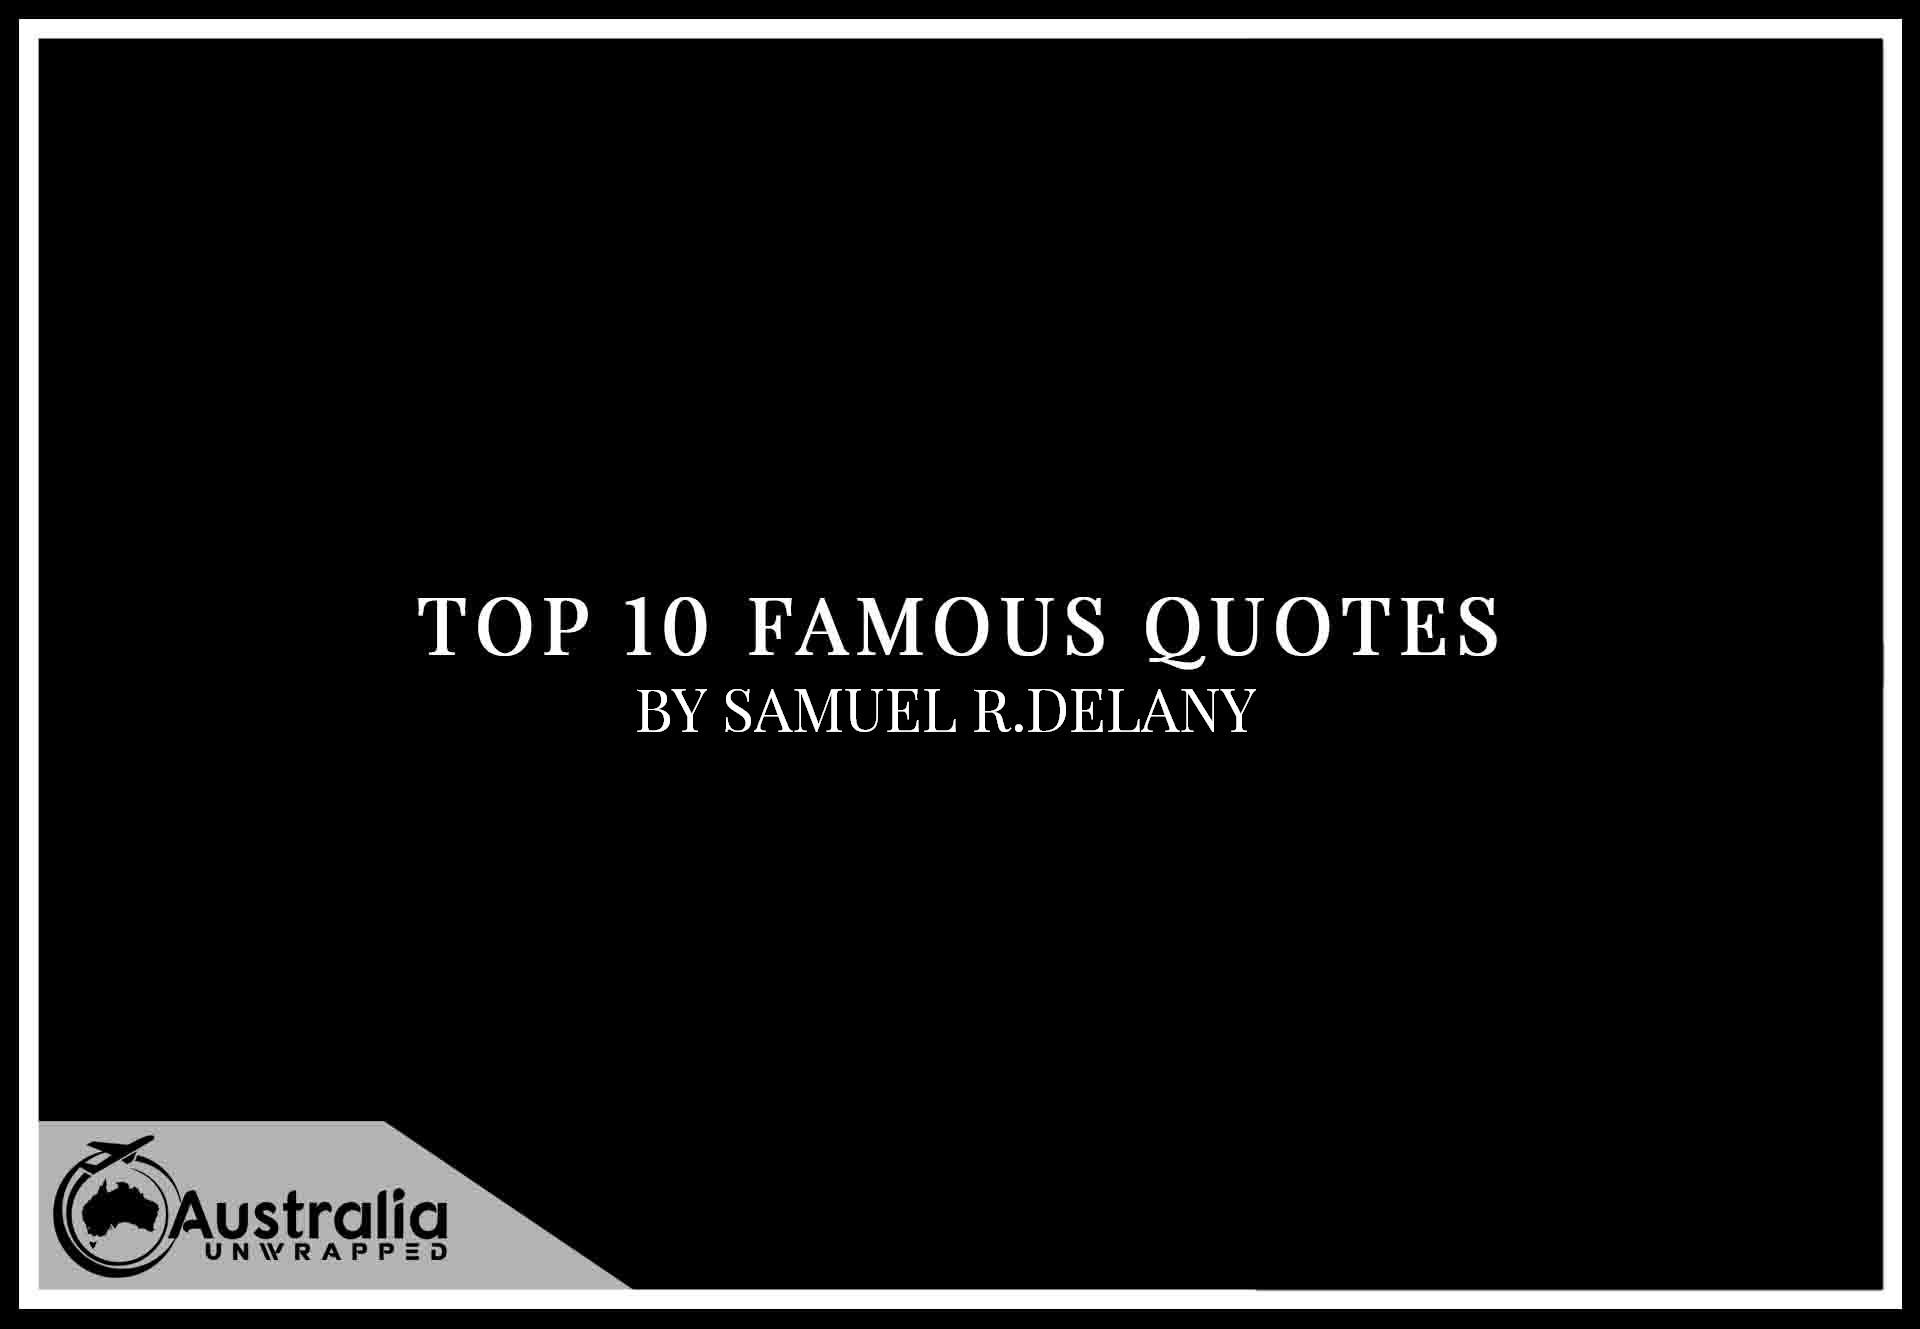 Top 10 Famous Quotes by Author Samuel R. Delany